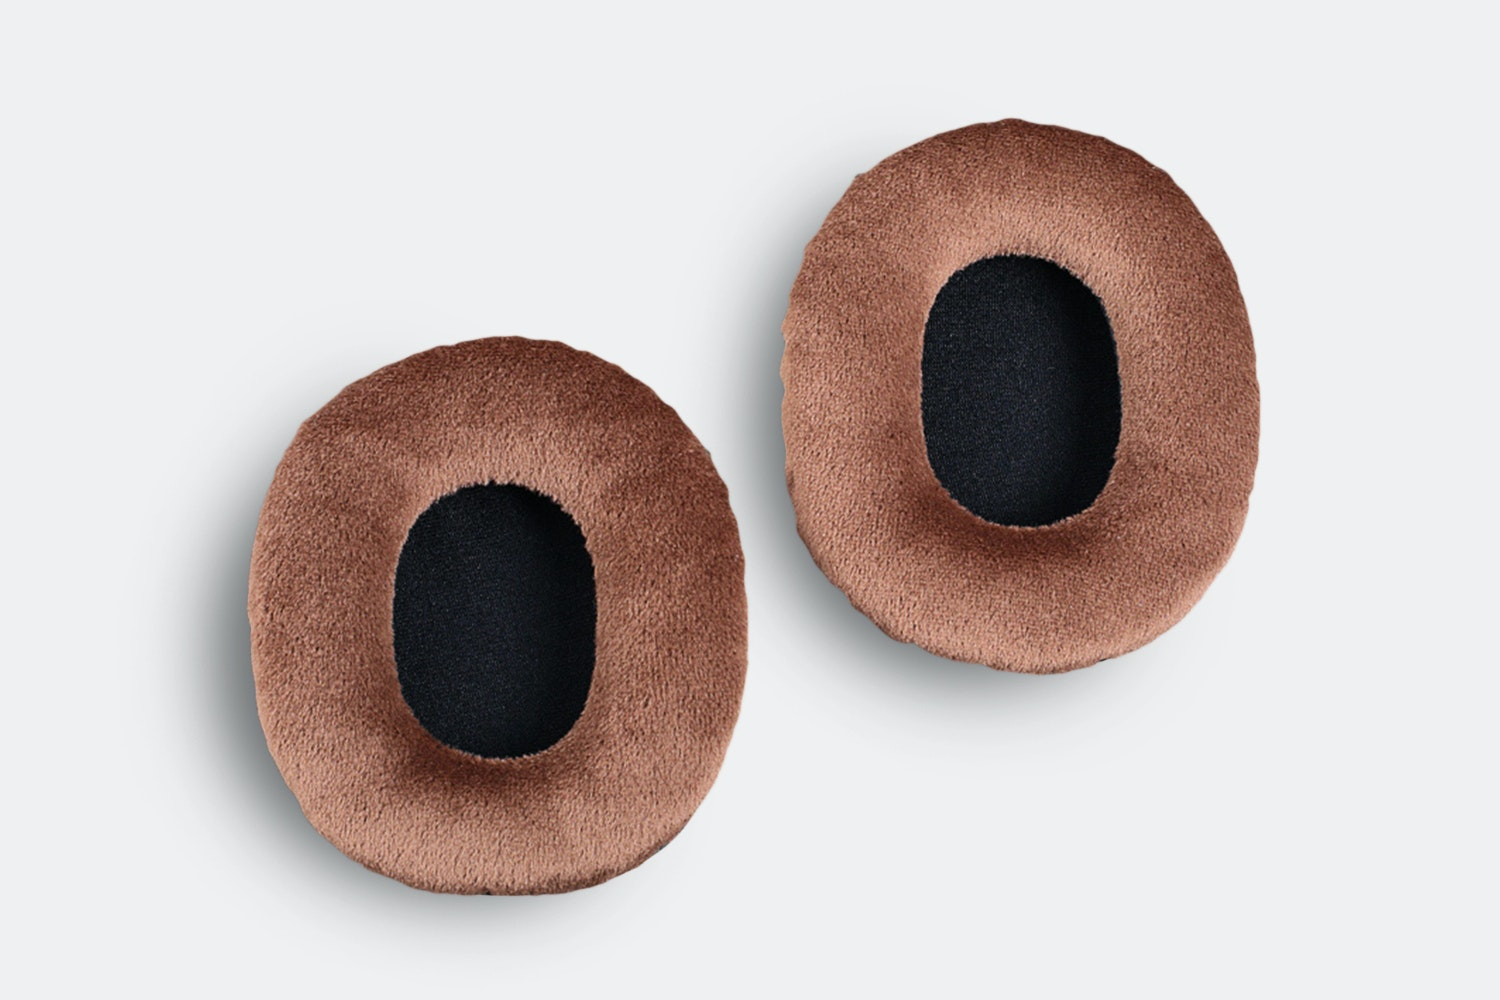 ATH-M50x Velour Ear Pads